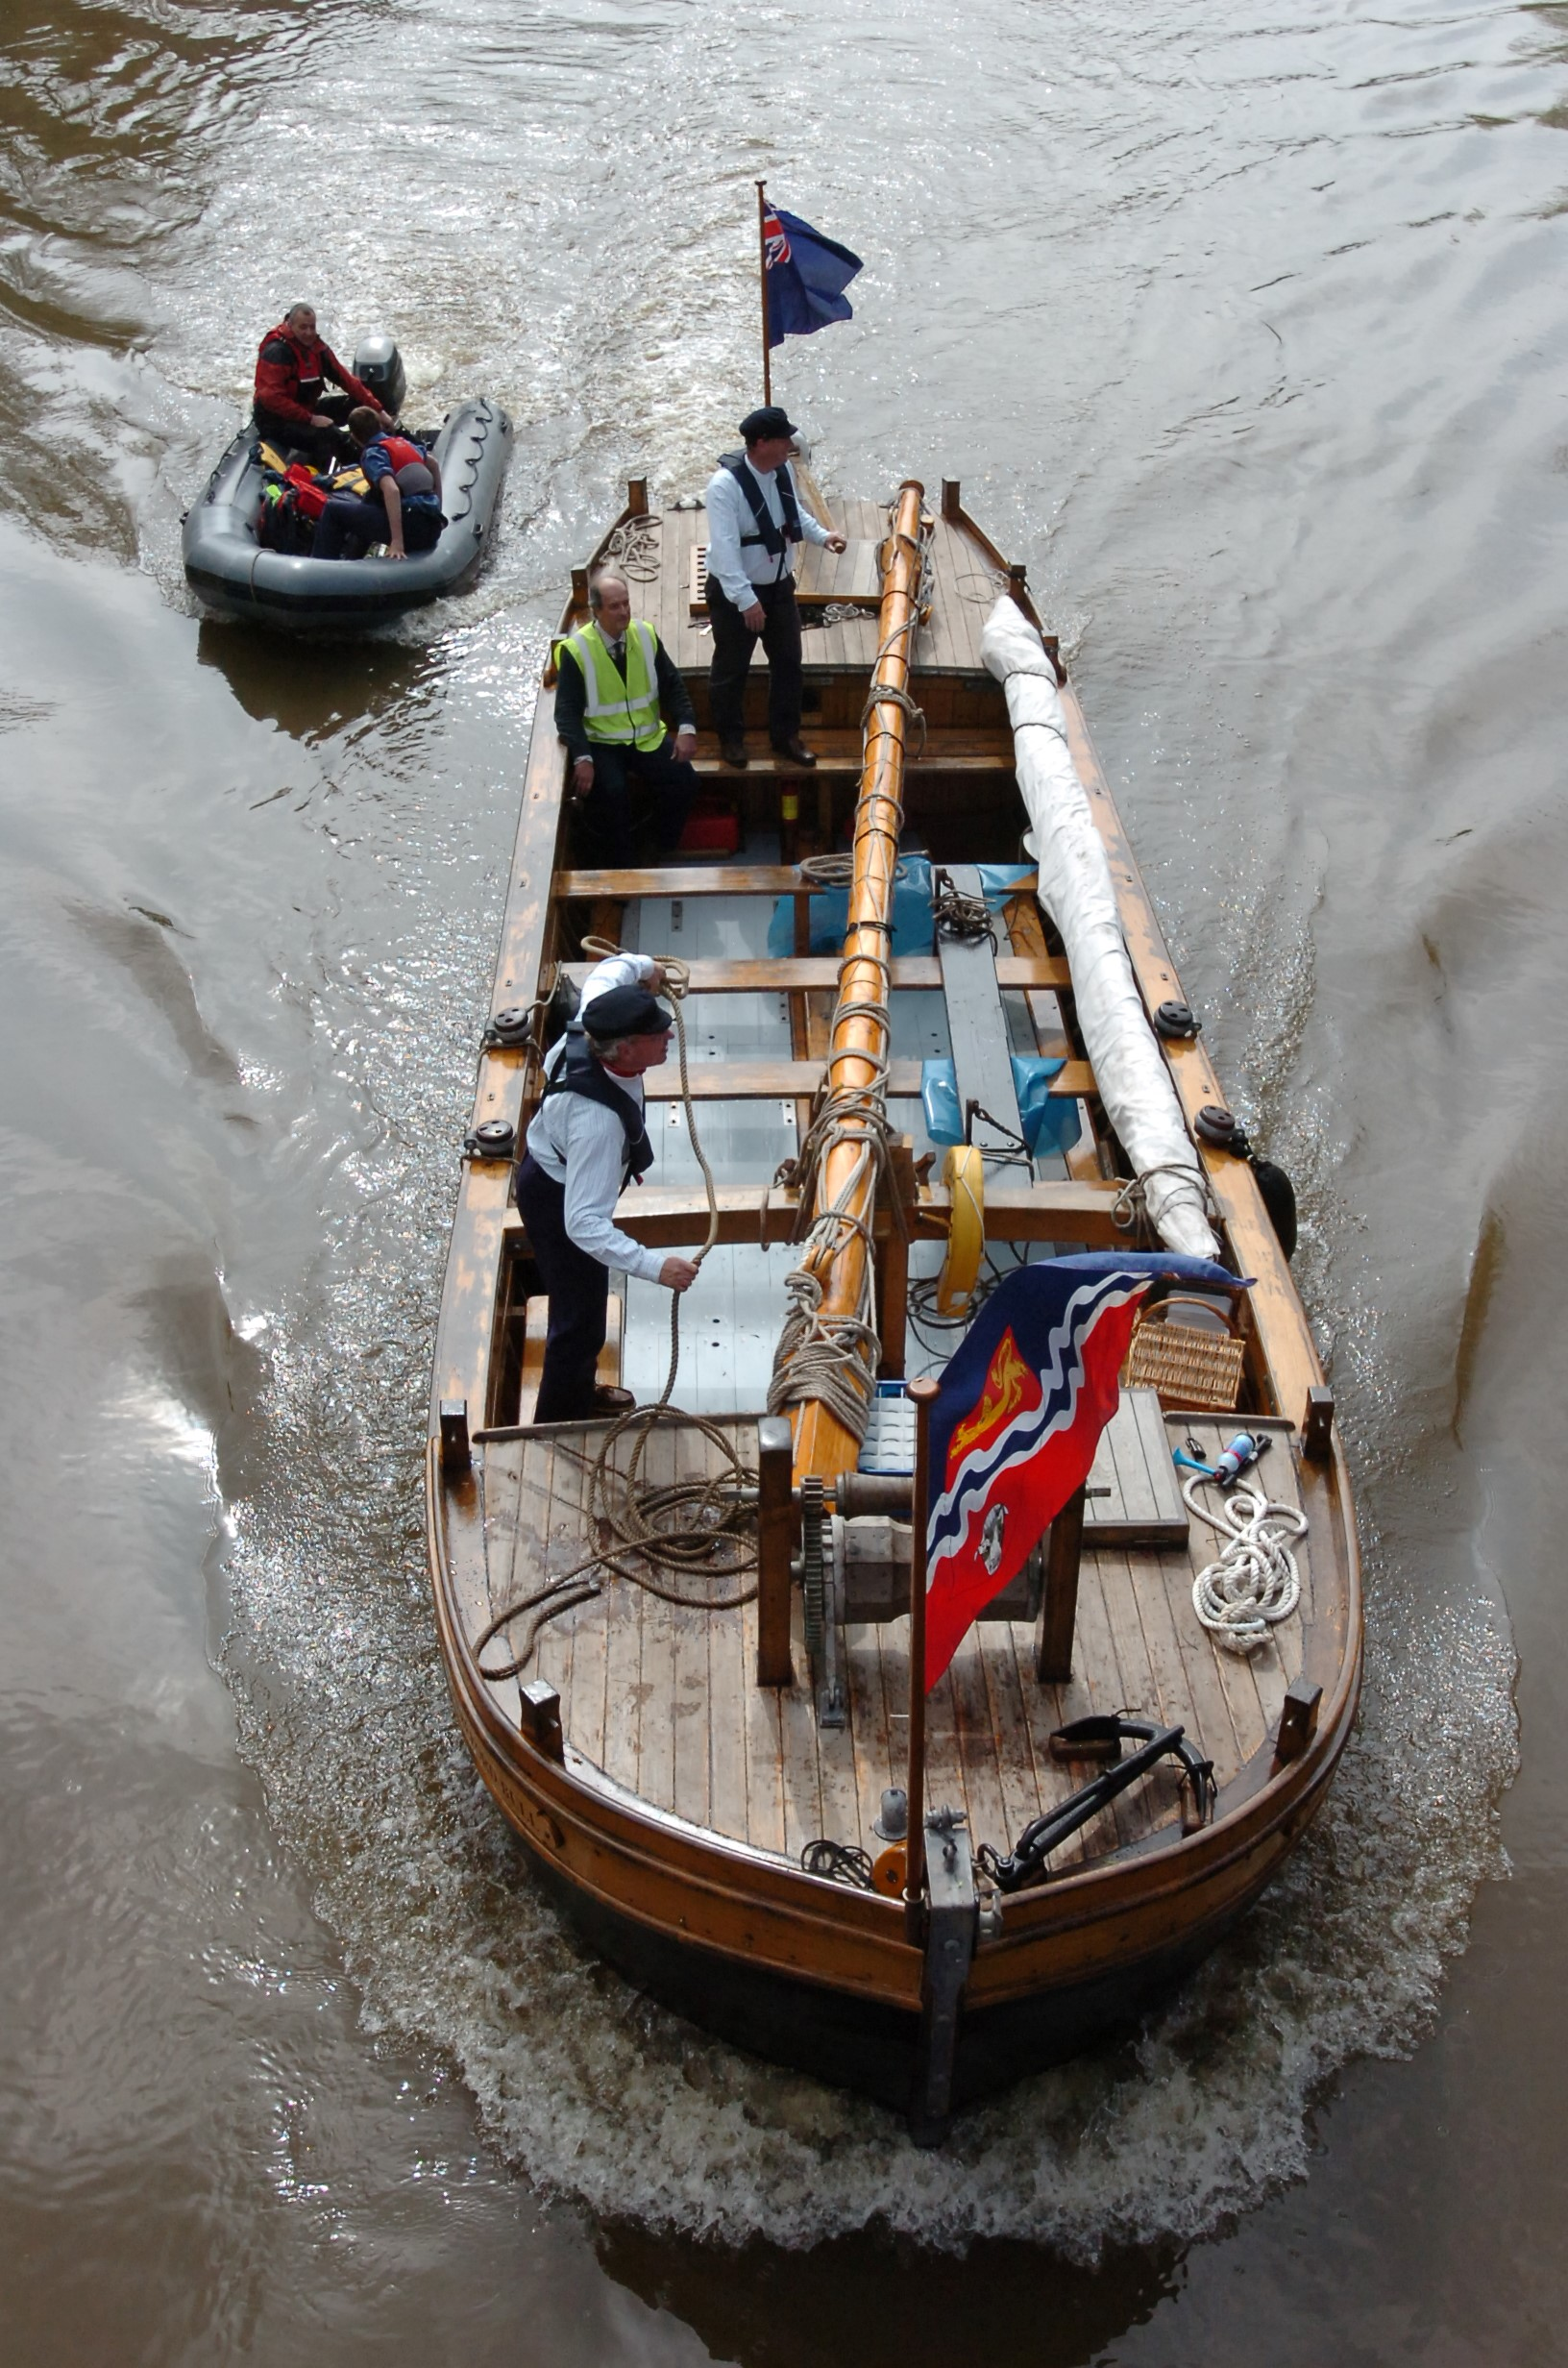 Jubillee boat launched in Hereford